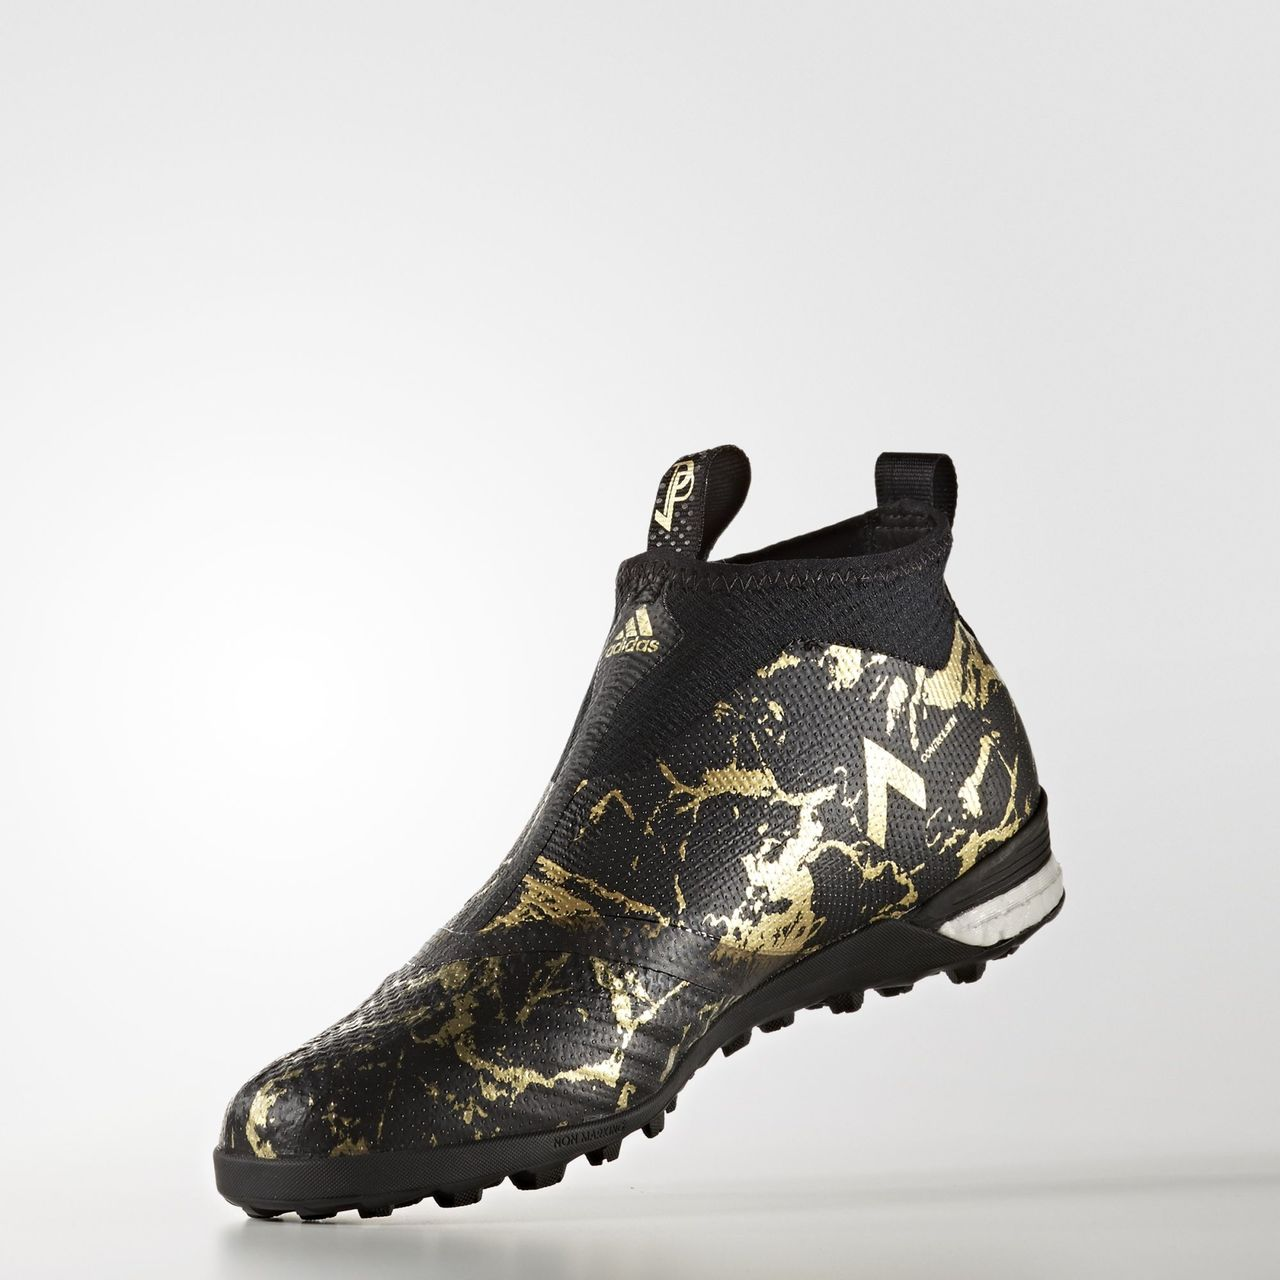 51bd1034416a ... Click to enlarge image  adidas_pp_ace_tango_17_purecontrol_turf_boots_core_black_matte_gold_d.jpg  ...